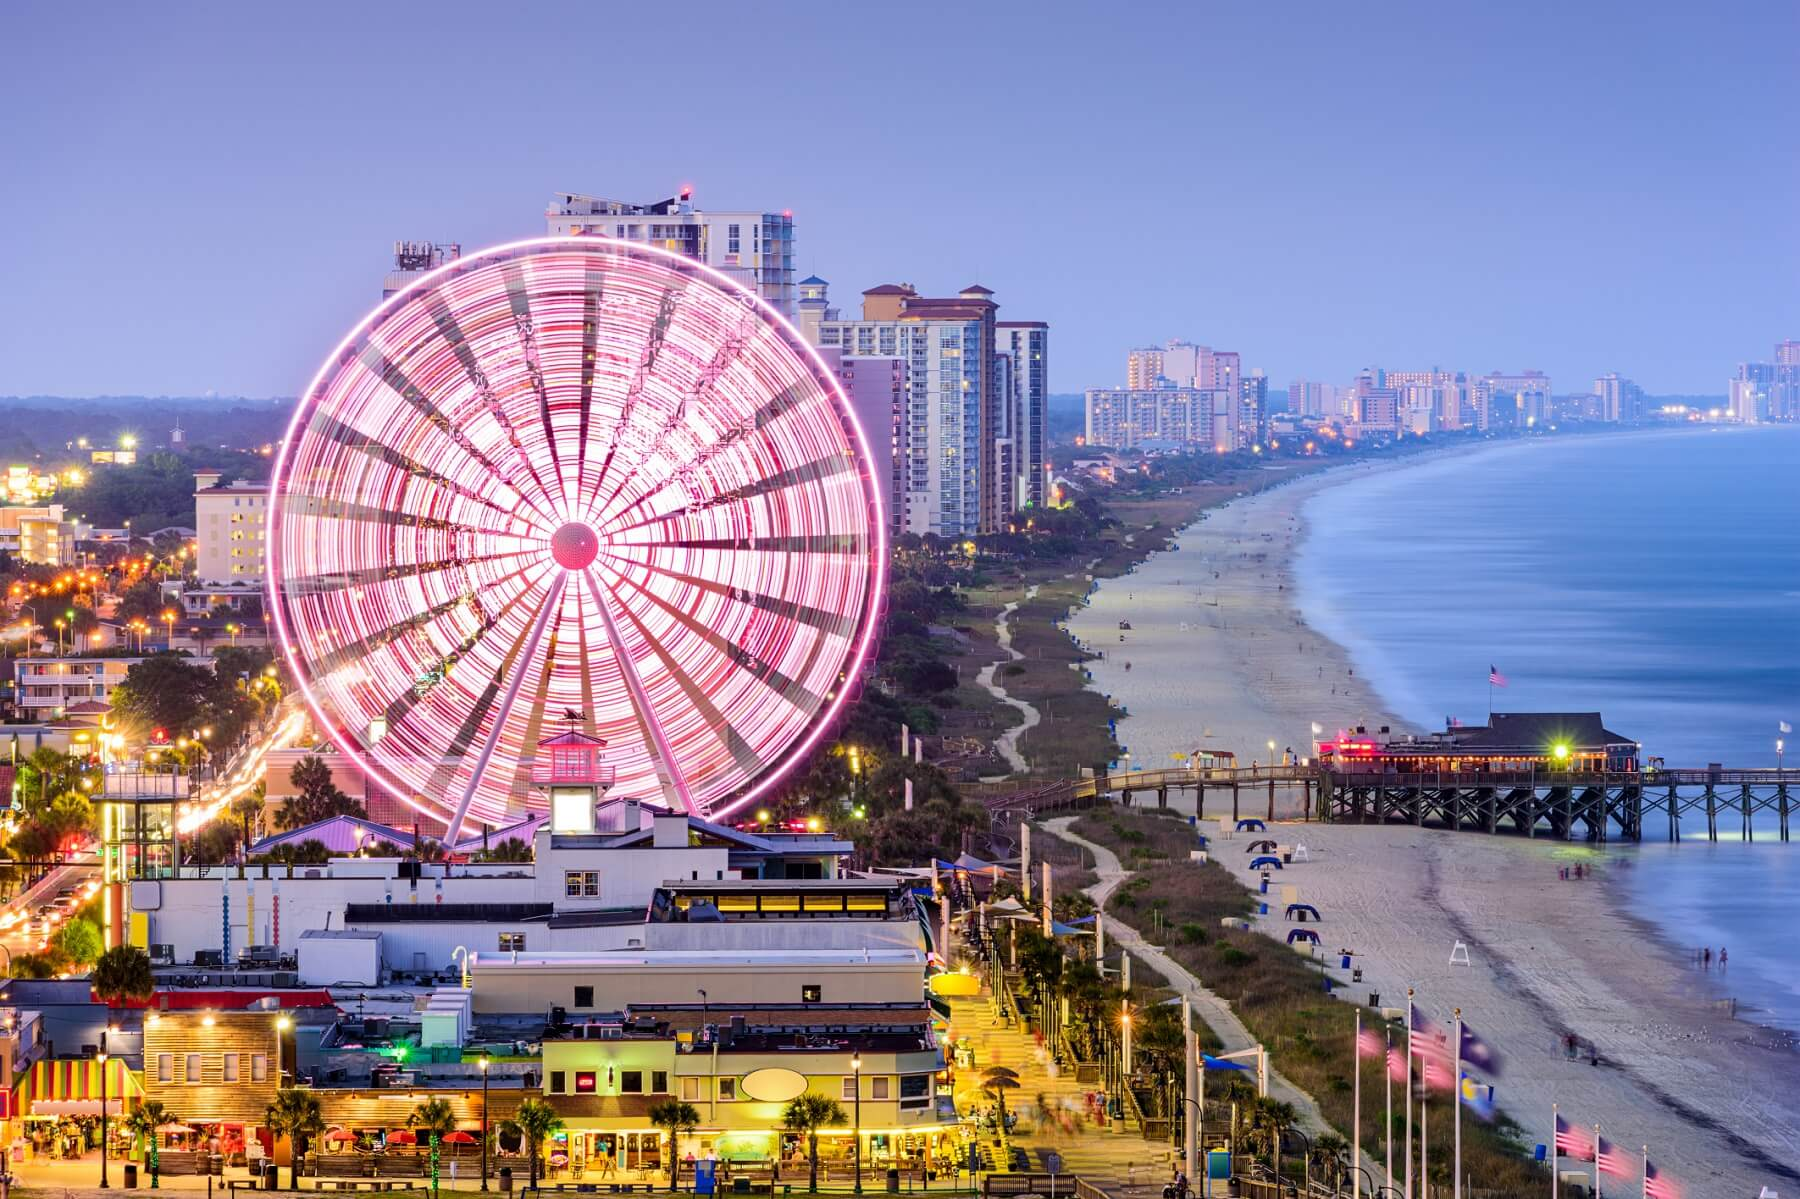 Myrtle beach at night